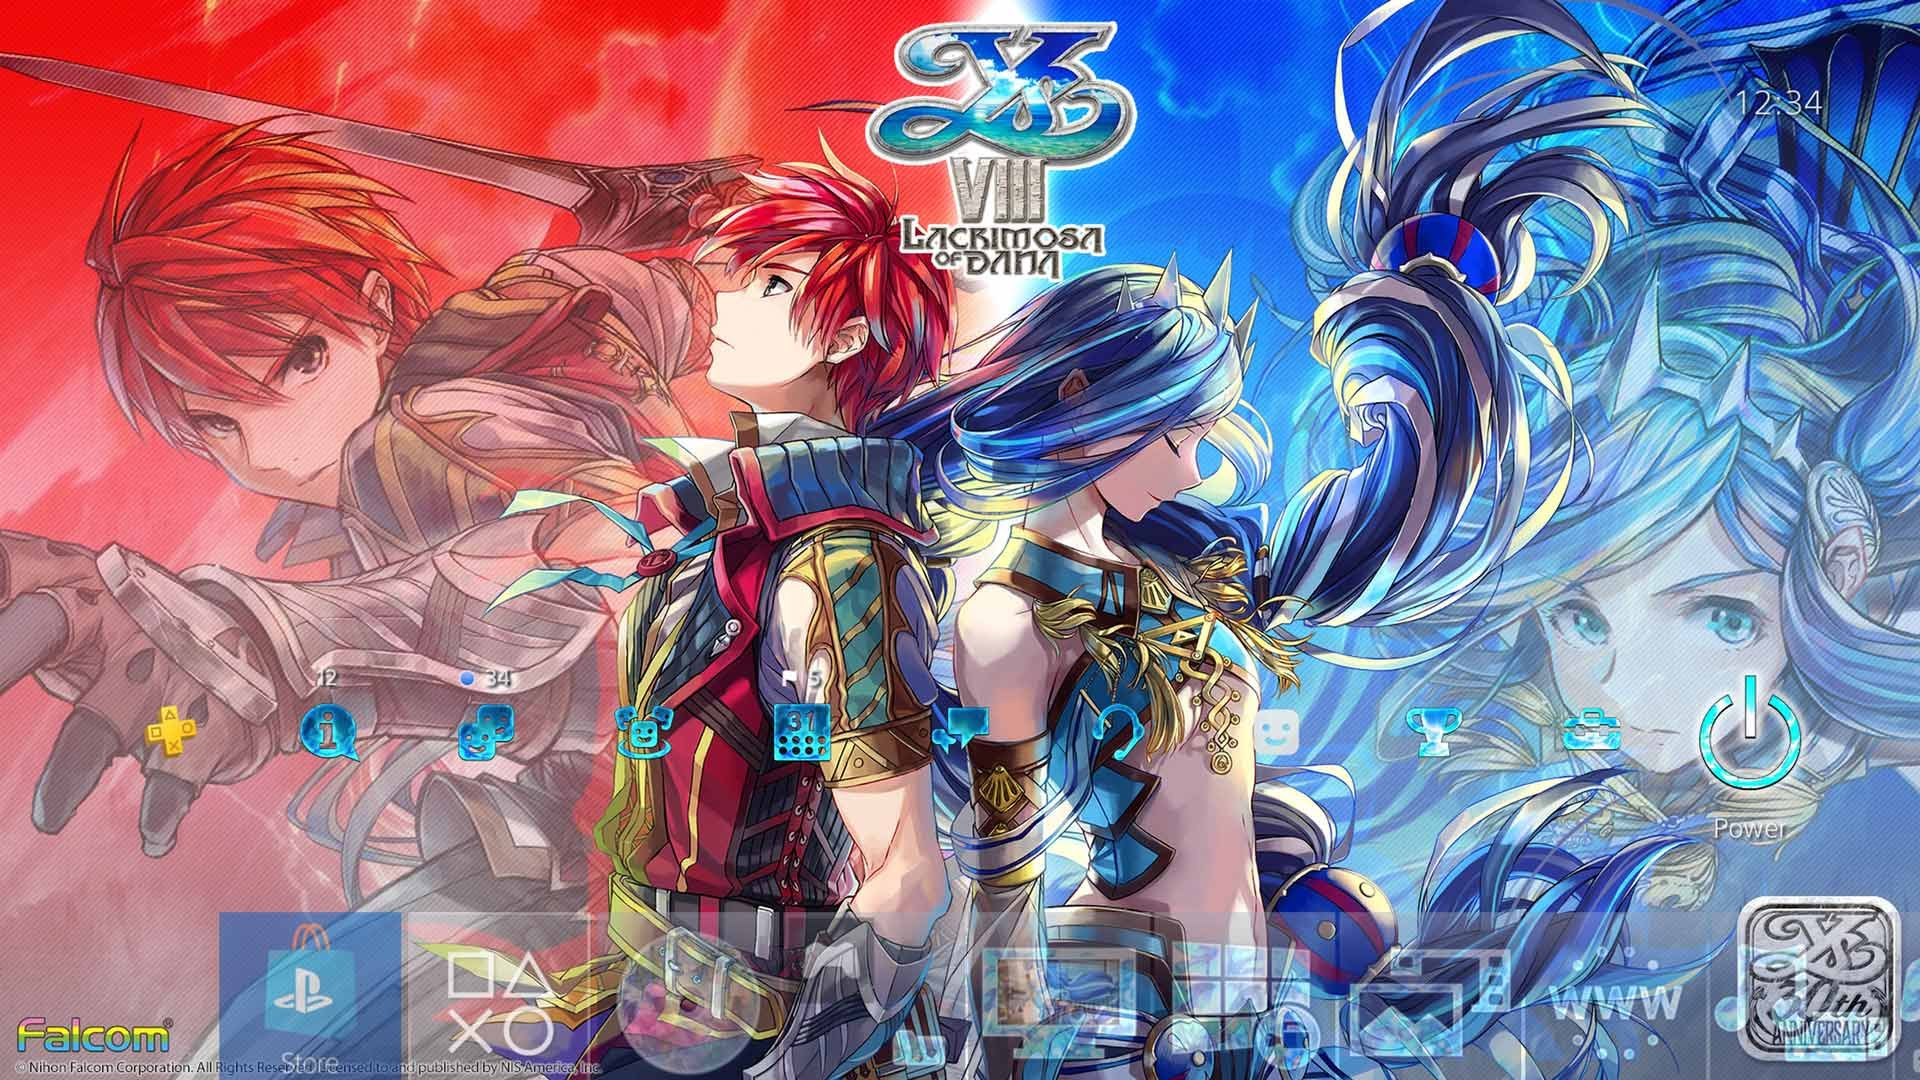 Ys Viii Lacrimosa Of Dana Ps4 Theme Game Preorders